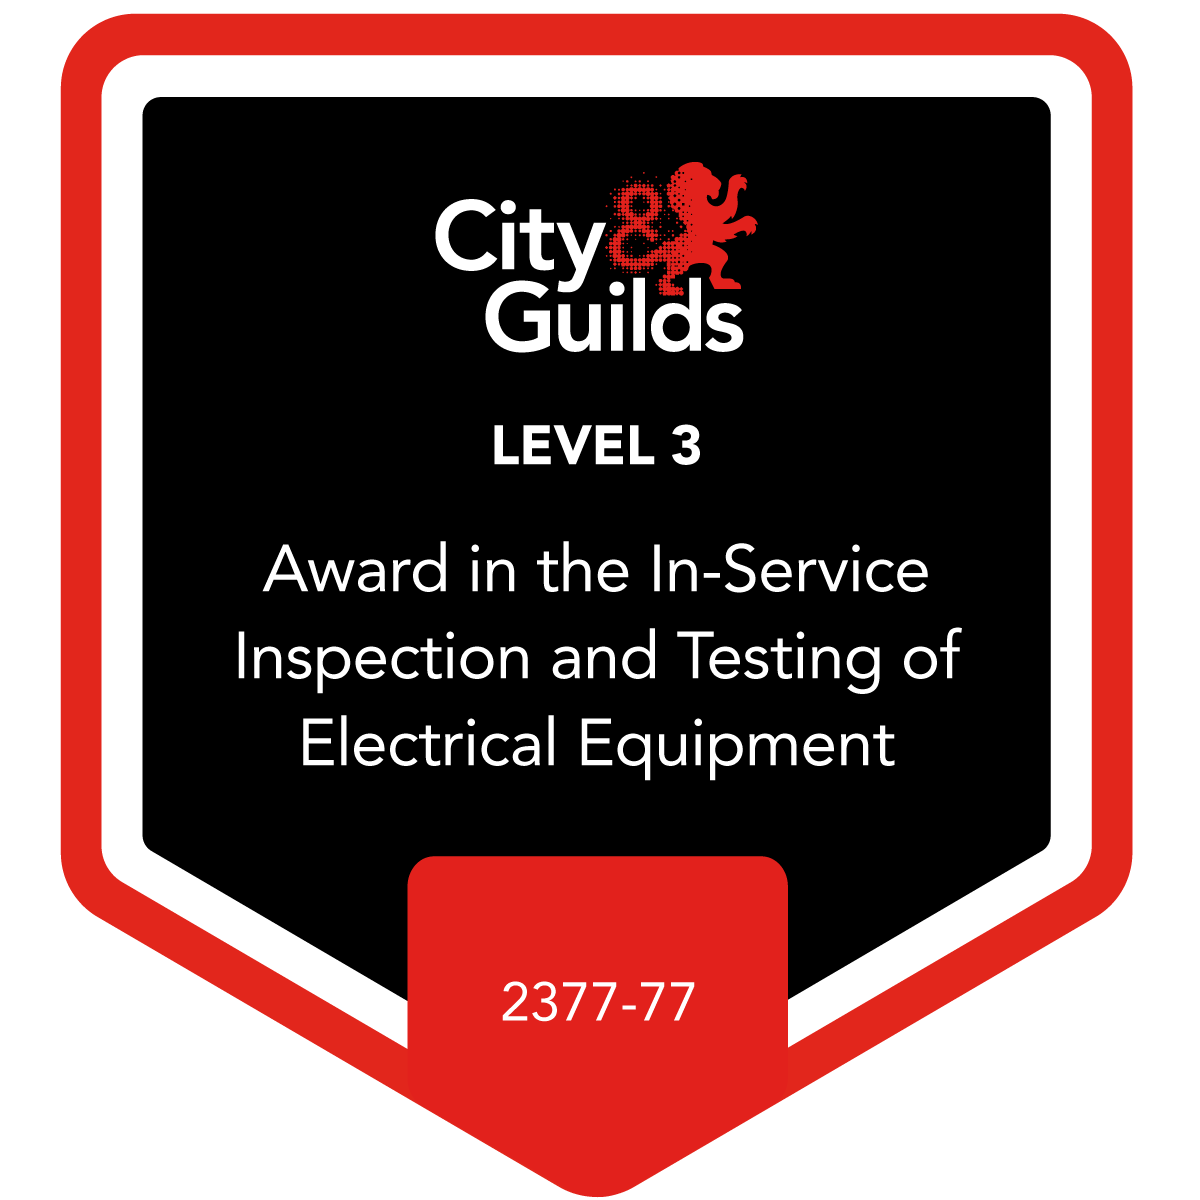 Level 3 Award in the In-Service Inspection and Testing of Electrical Equipment 2377-77